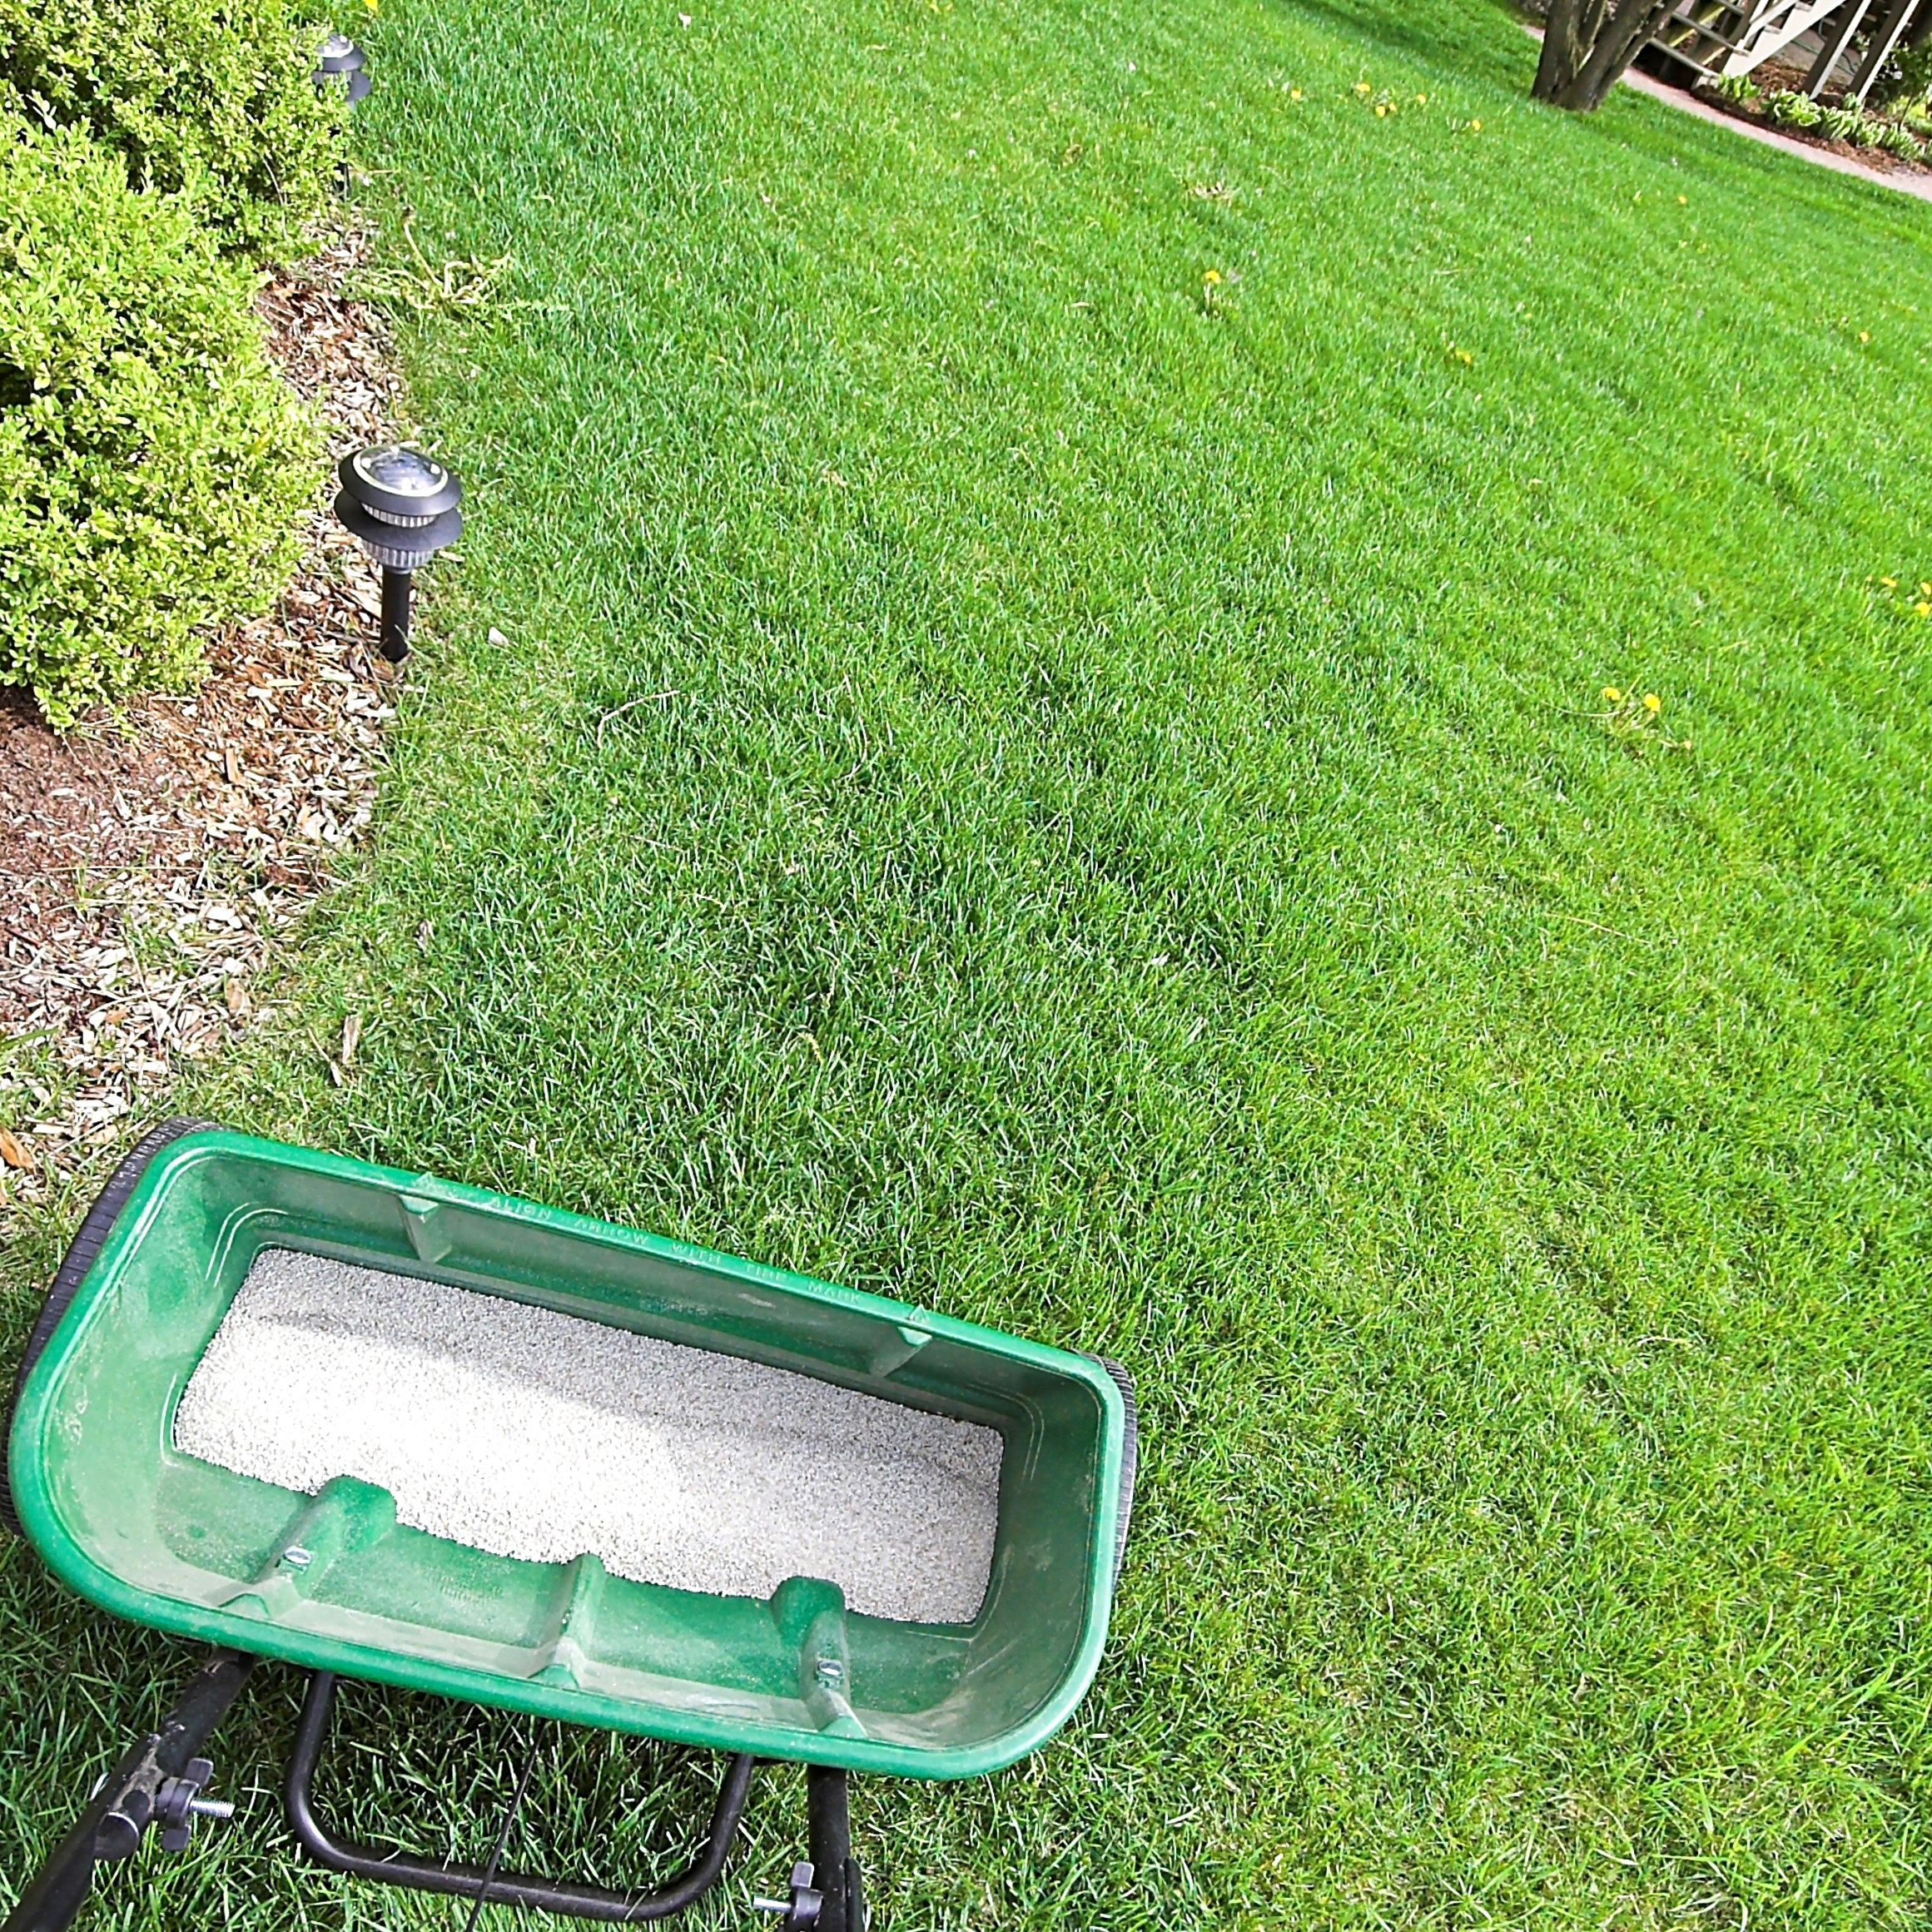 Feed the beast. - Apply slow-release fertilizers every 6-8 weeks beginning in late spring when the soil temperature is above 55°. Consider 20-5-10 (20% nitrogen, 5% phosphate, 10% potassium), but check with your local garden center for the proper mix for your area and grass type.